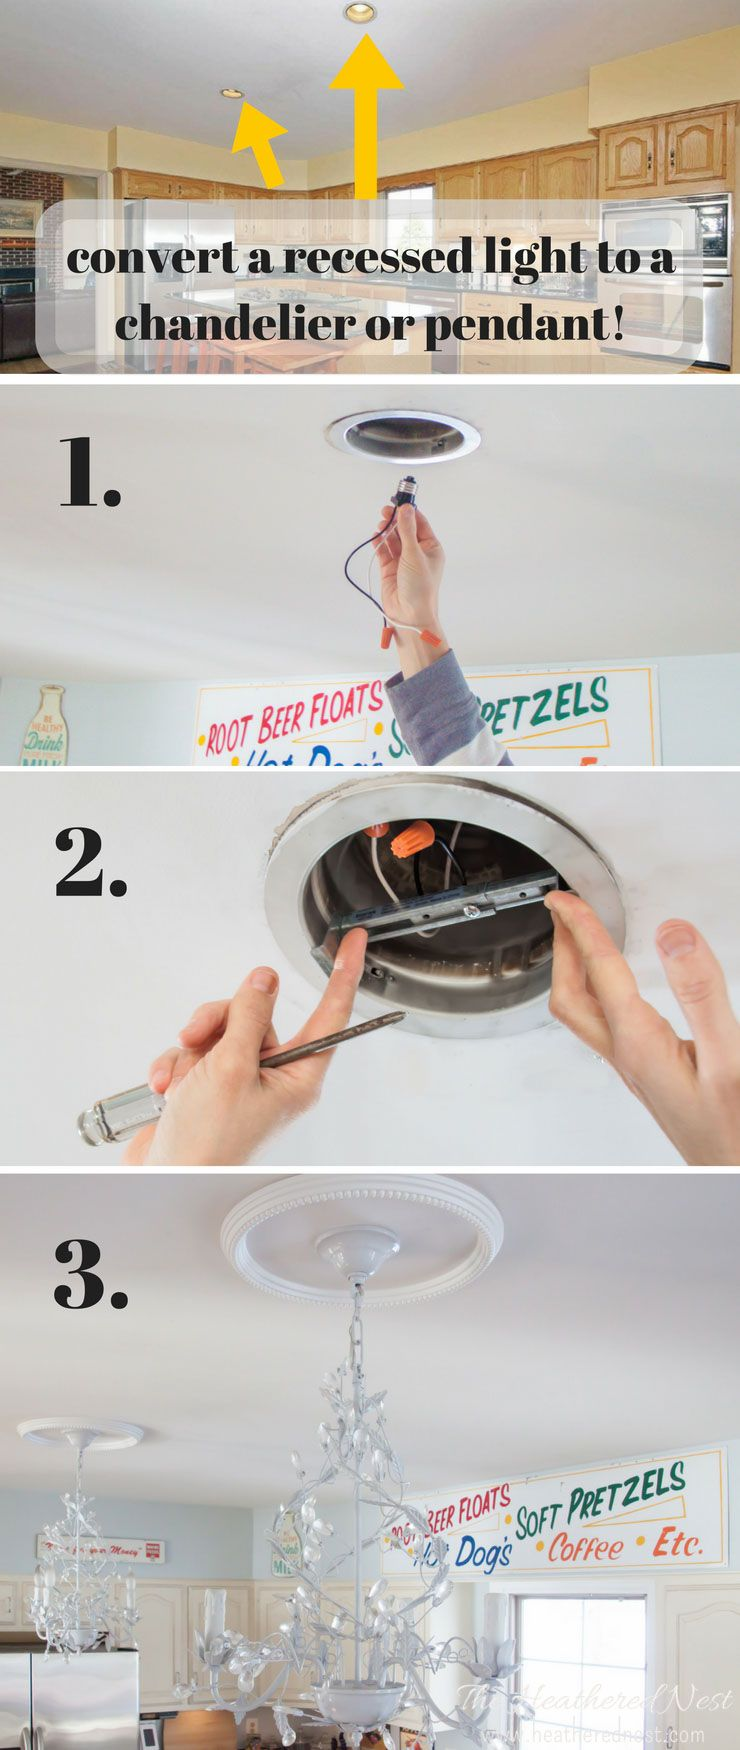 How To Change A Light Fixture Using A Recessed Light Conversion Kit Aka